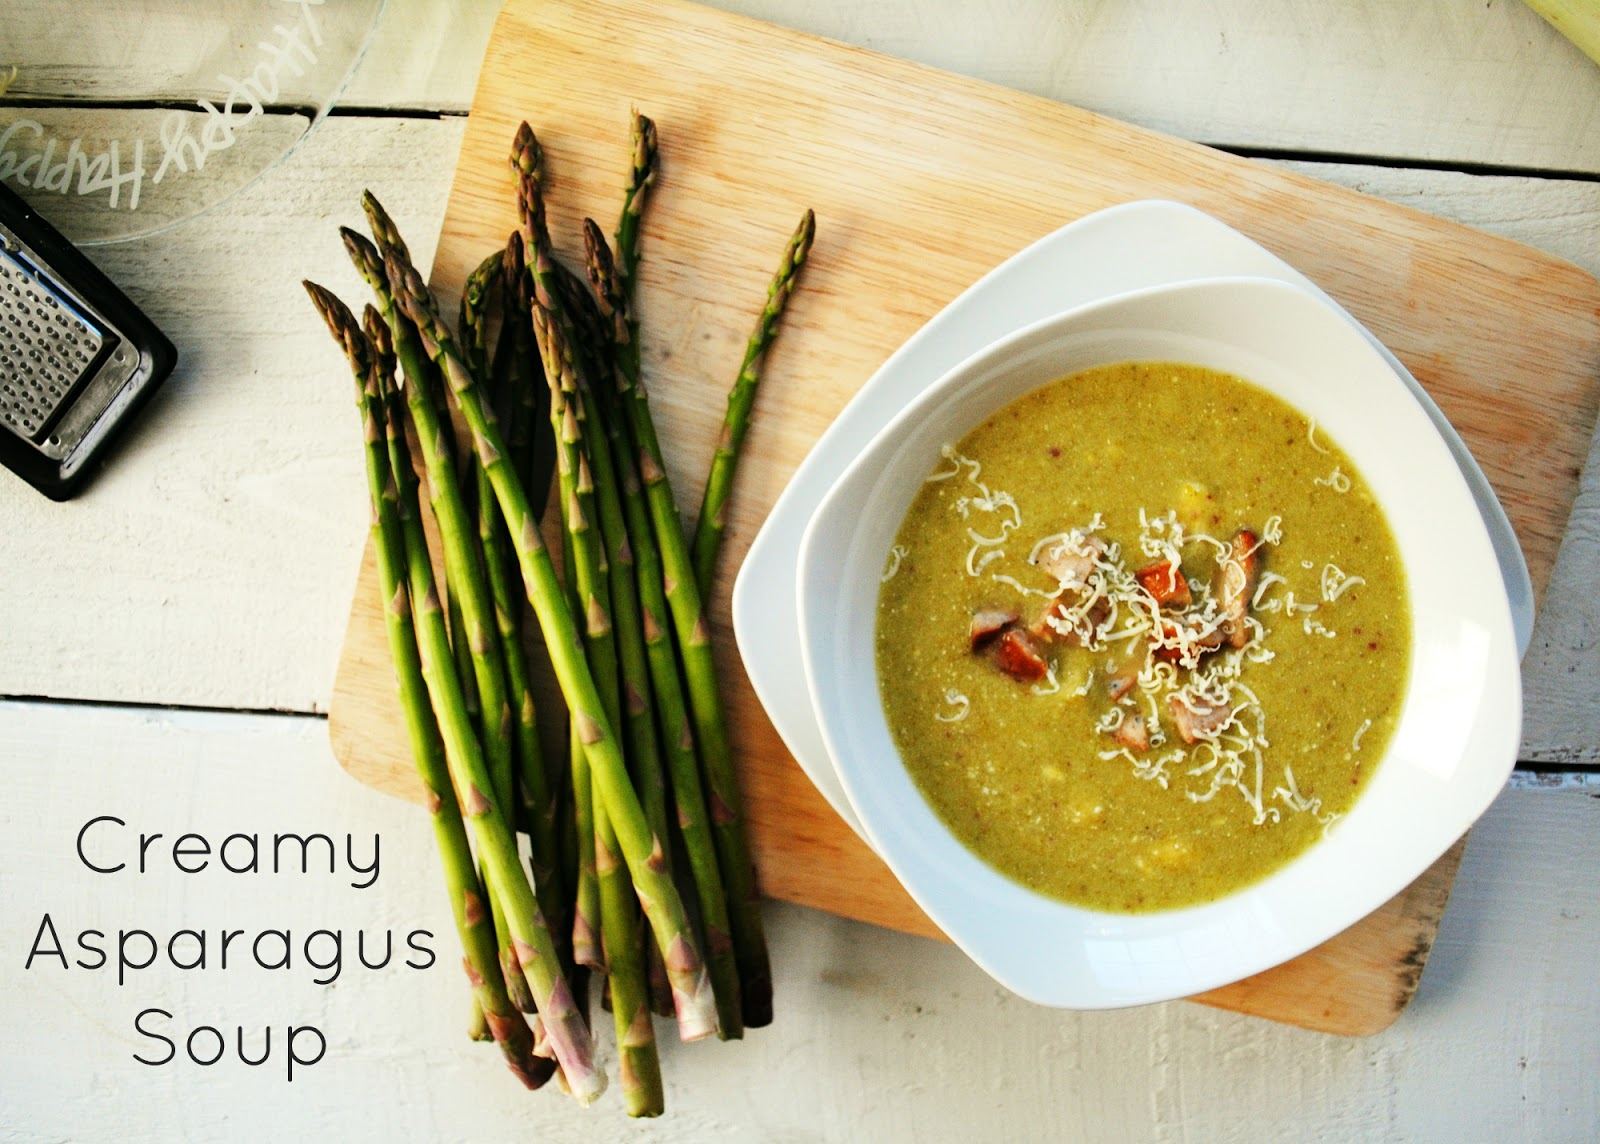 ... of Garlic, A Pinch of Salt: Creamy Asparagus Soup with Chicken Sausage